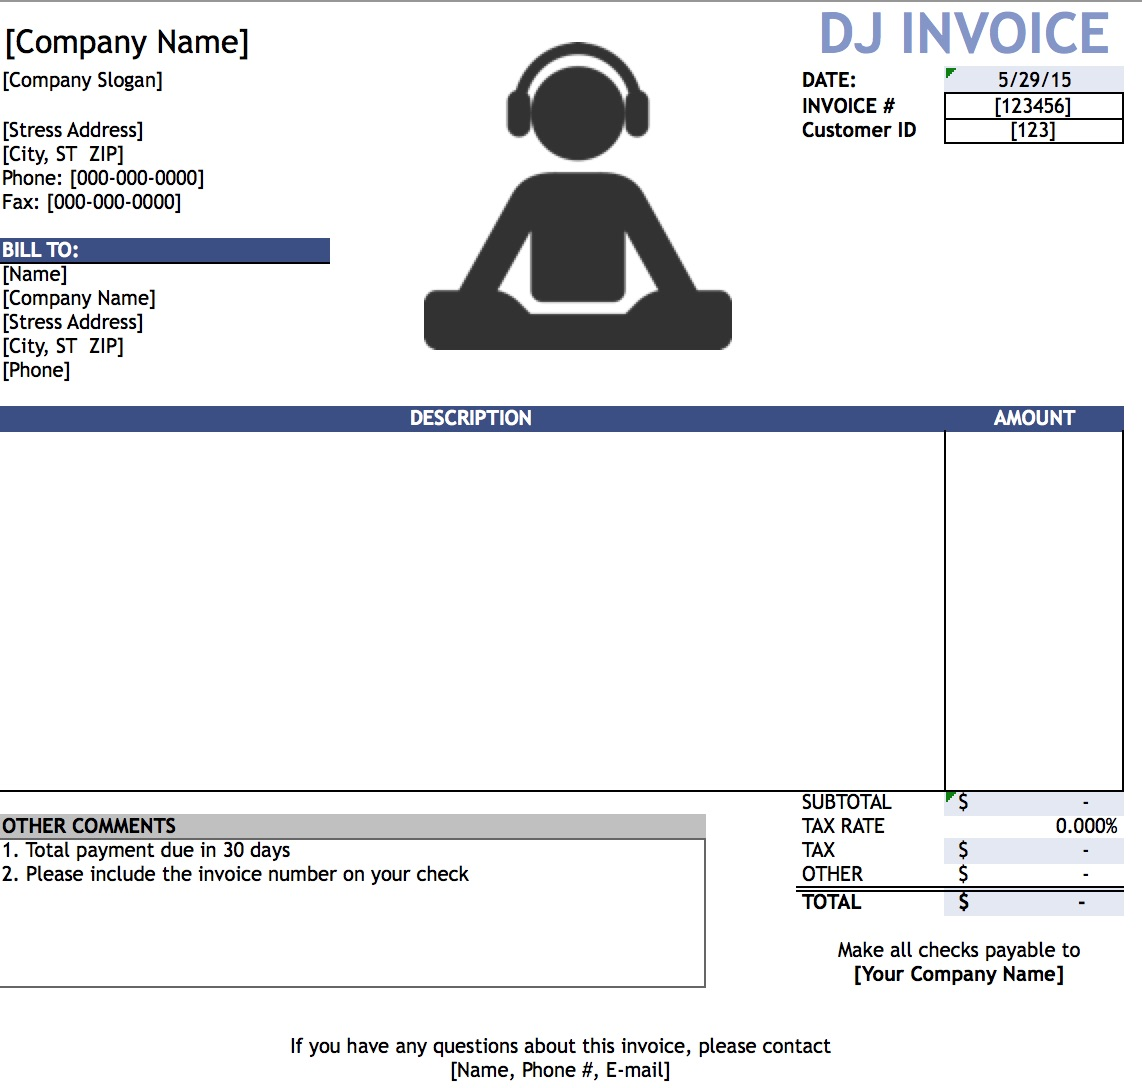 Free DJ Disc Jockey Invoice Template Excel PDF Word Doc - Invoice template excel free download online used book store